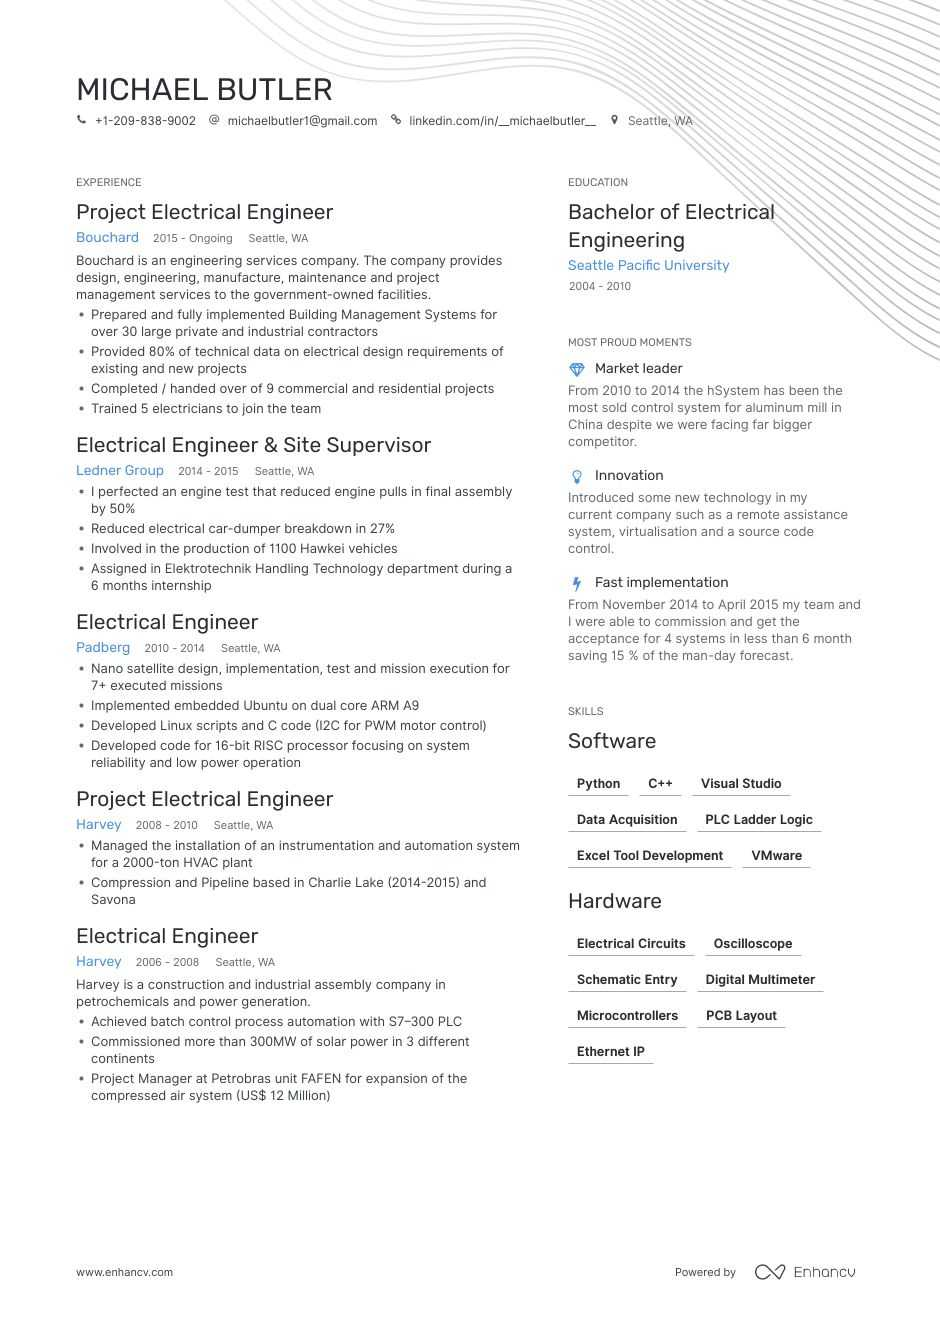 electrical engineer resume examples pro tips featured enhancv normal objective for Resume Normal Objective For Resume